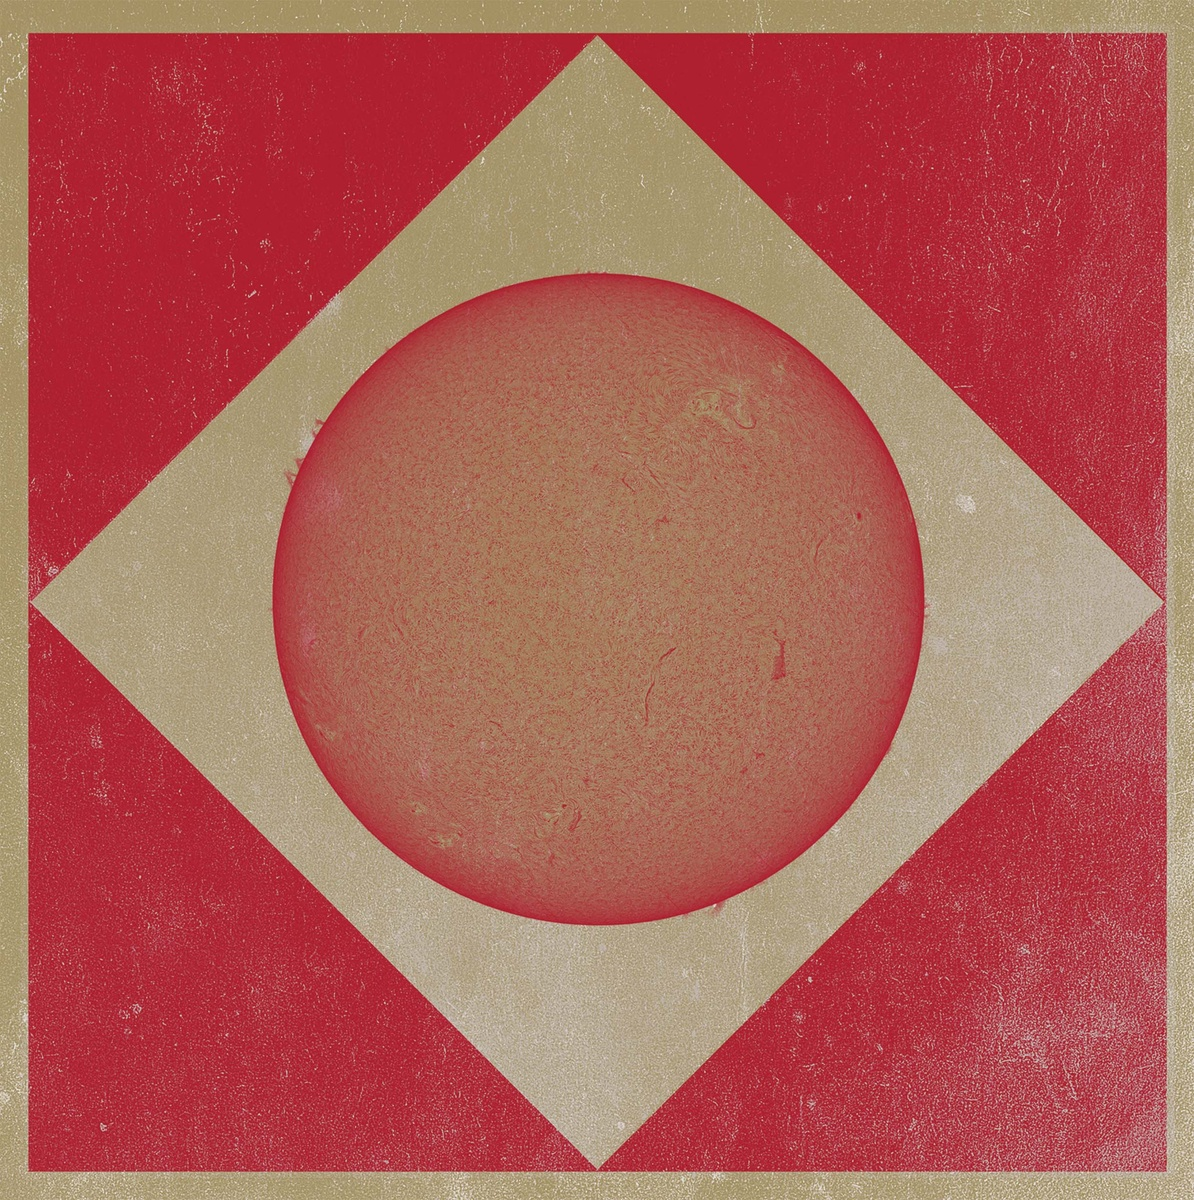 sunn o ulver terrestrials The 50 Most Anticipated Albums of 2014